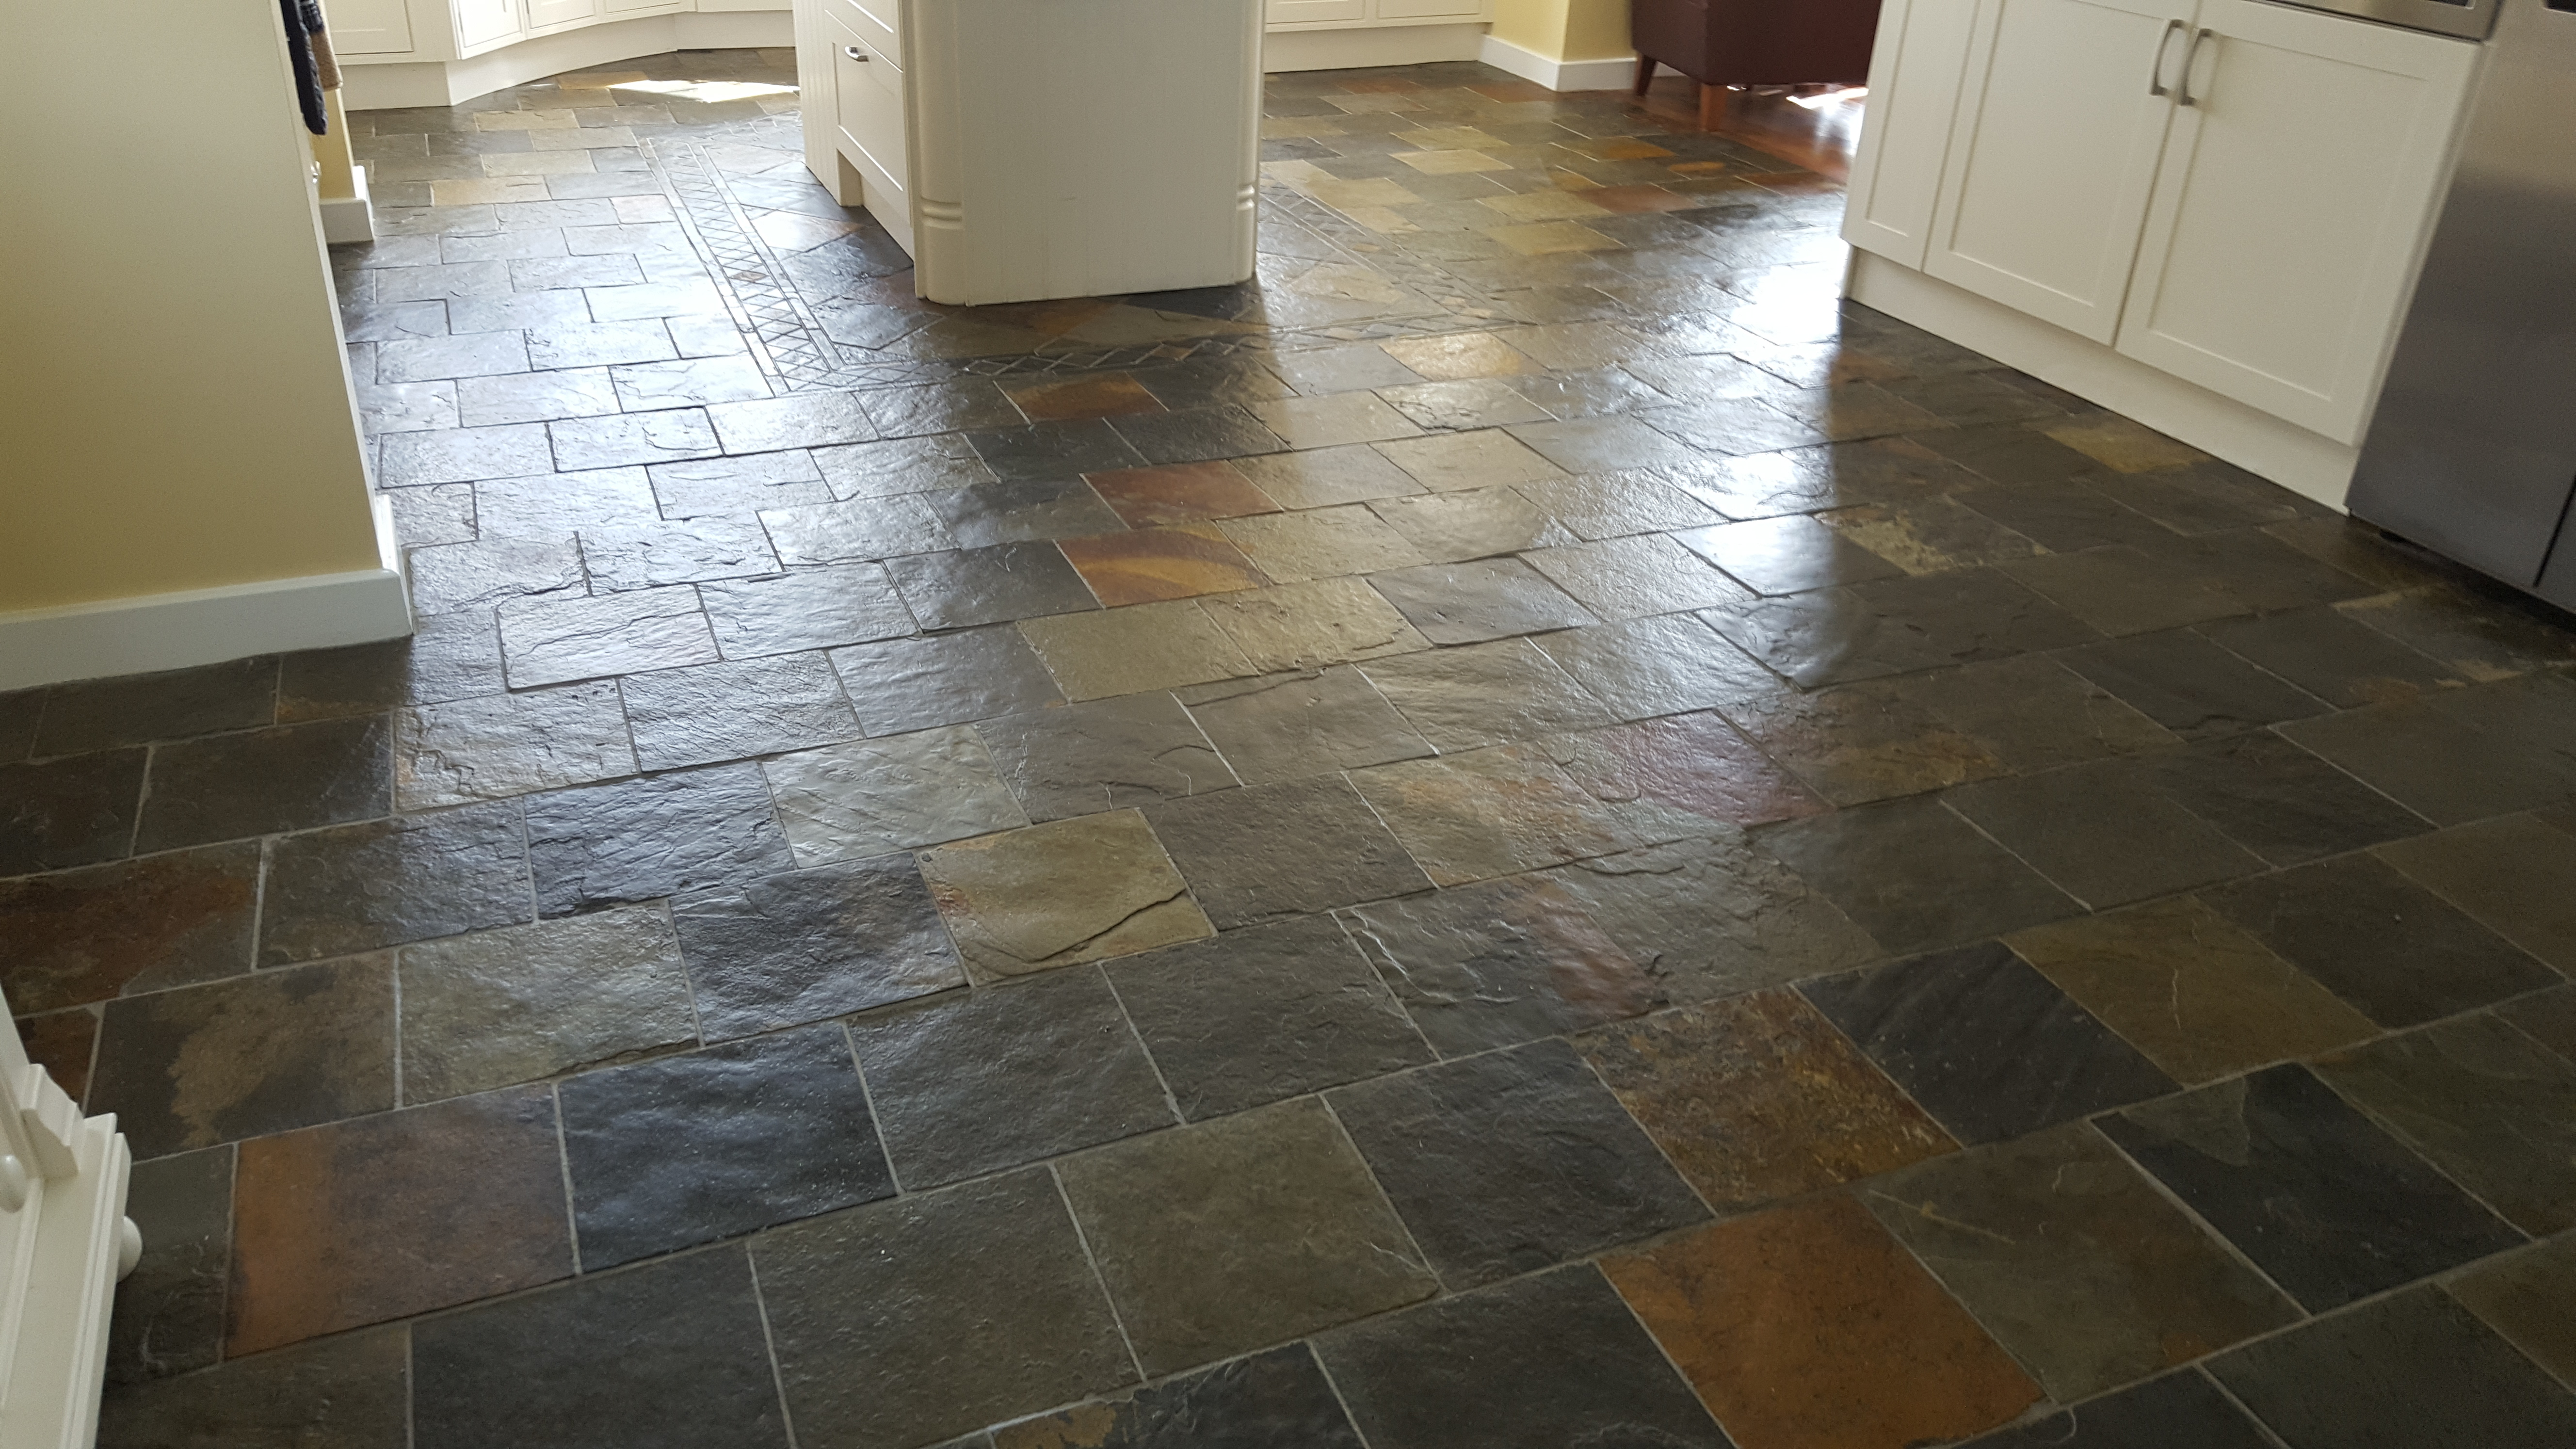 Chinese Slate Floor Archives Avs Cleans Restores Avs Cleans